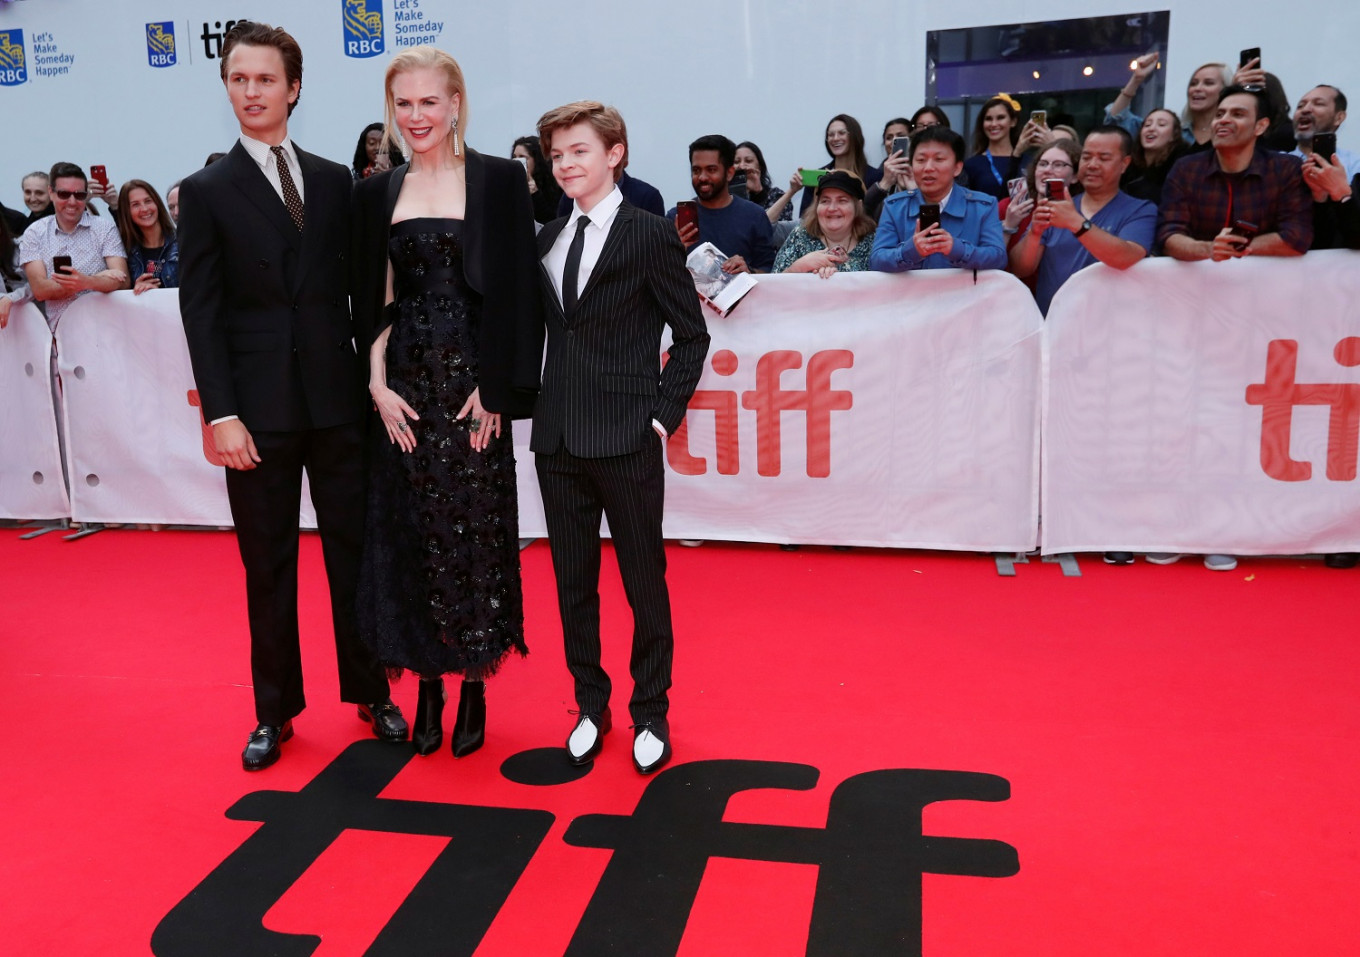 'The Goldfinch' aims to live up to book at Toronto Film Festival